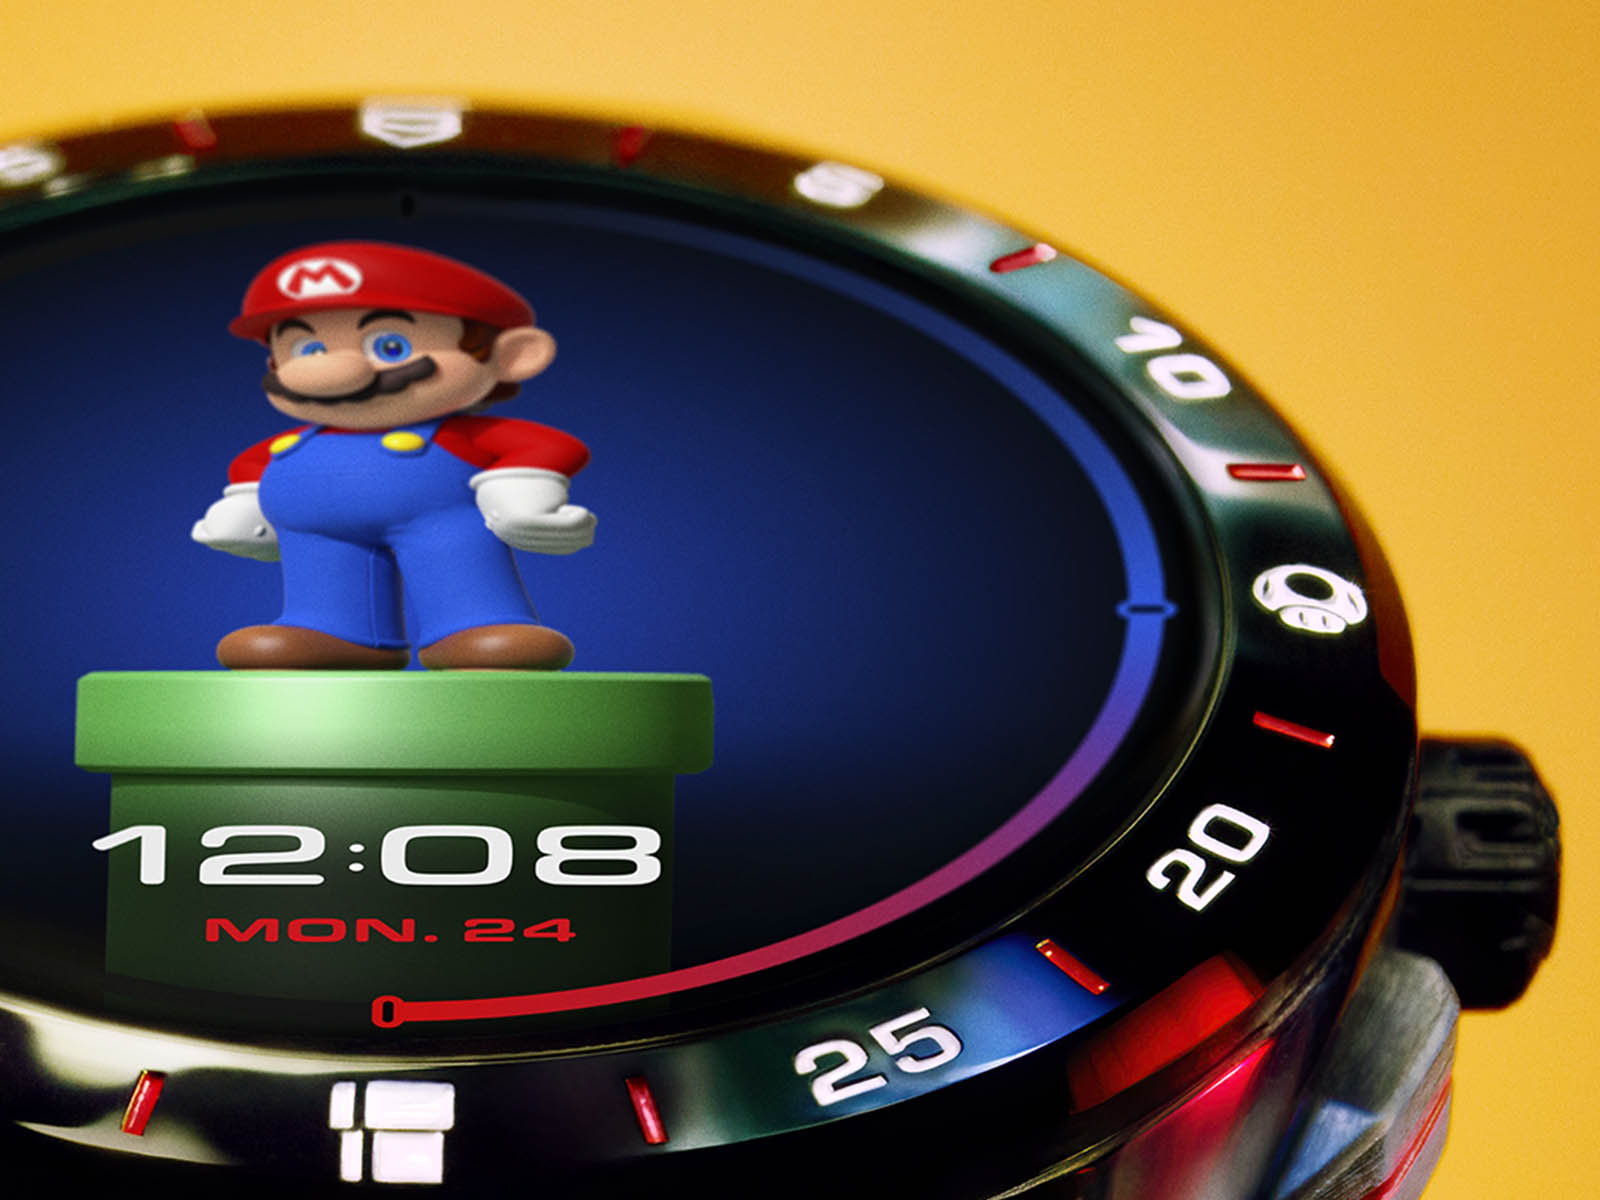 sbg8a13-bt6247-tag-heuer-connected-super-mario-limited-edition-5.jpg